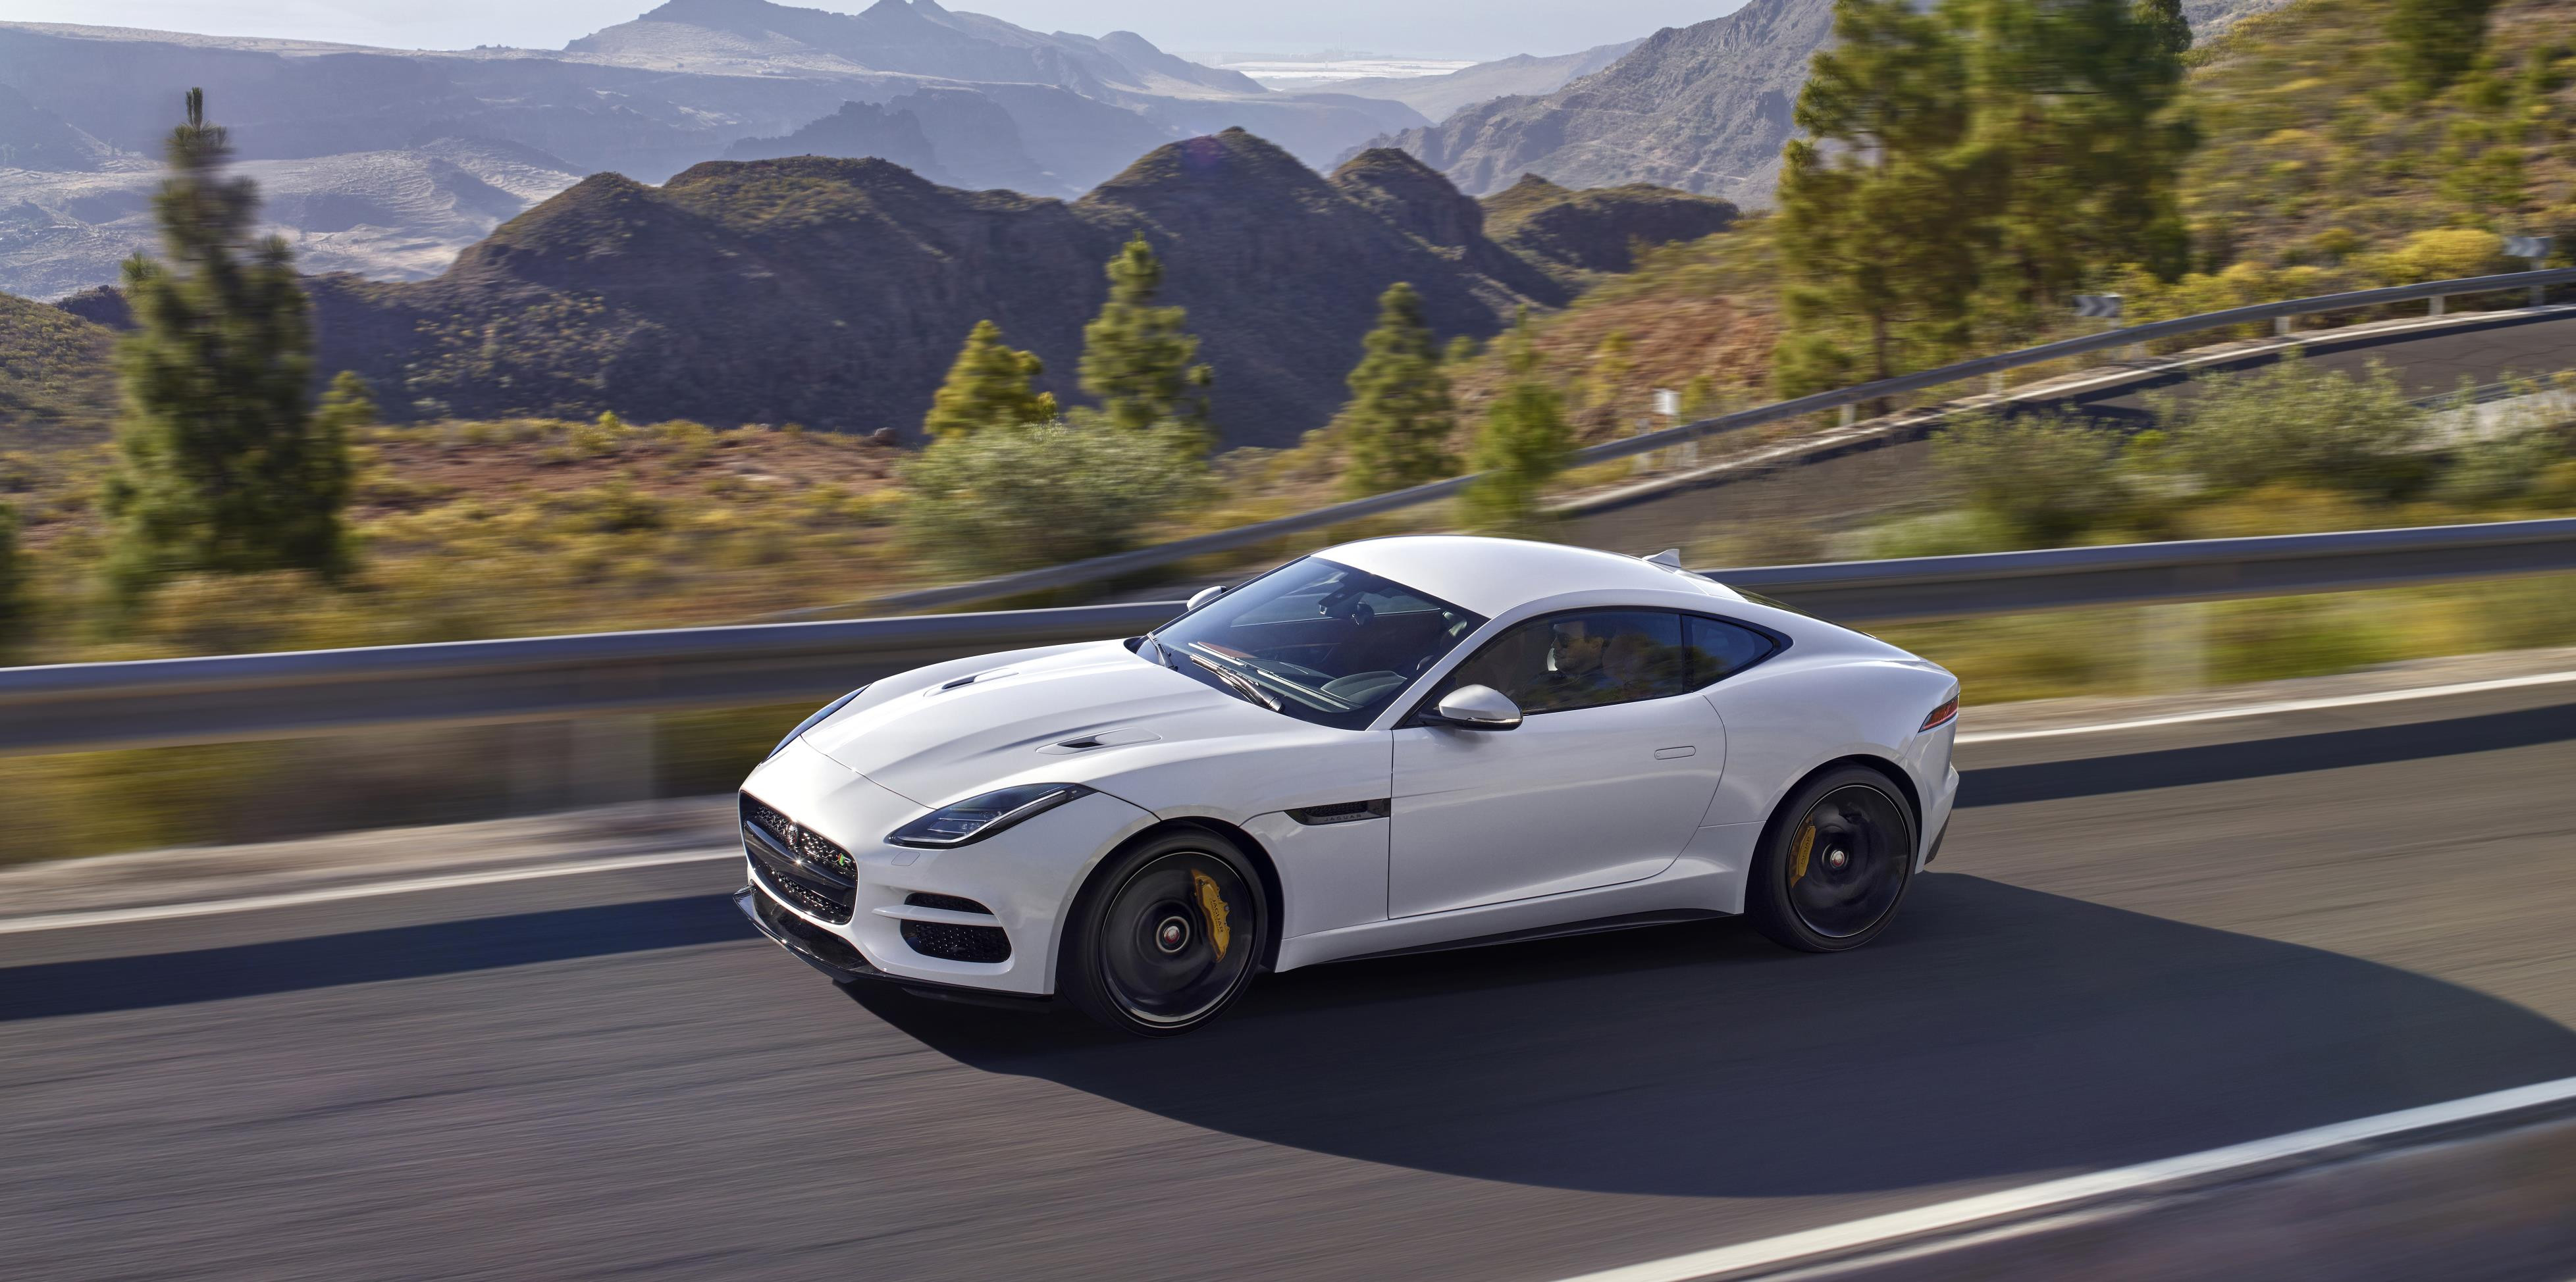 White Jaguar F-TYPE driving at speed and seen from the side and above